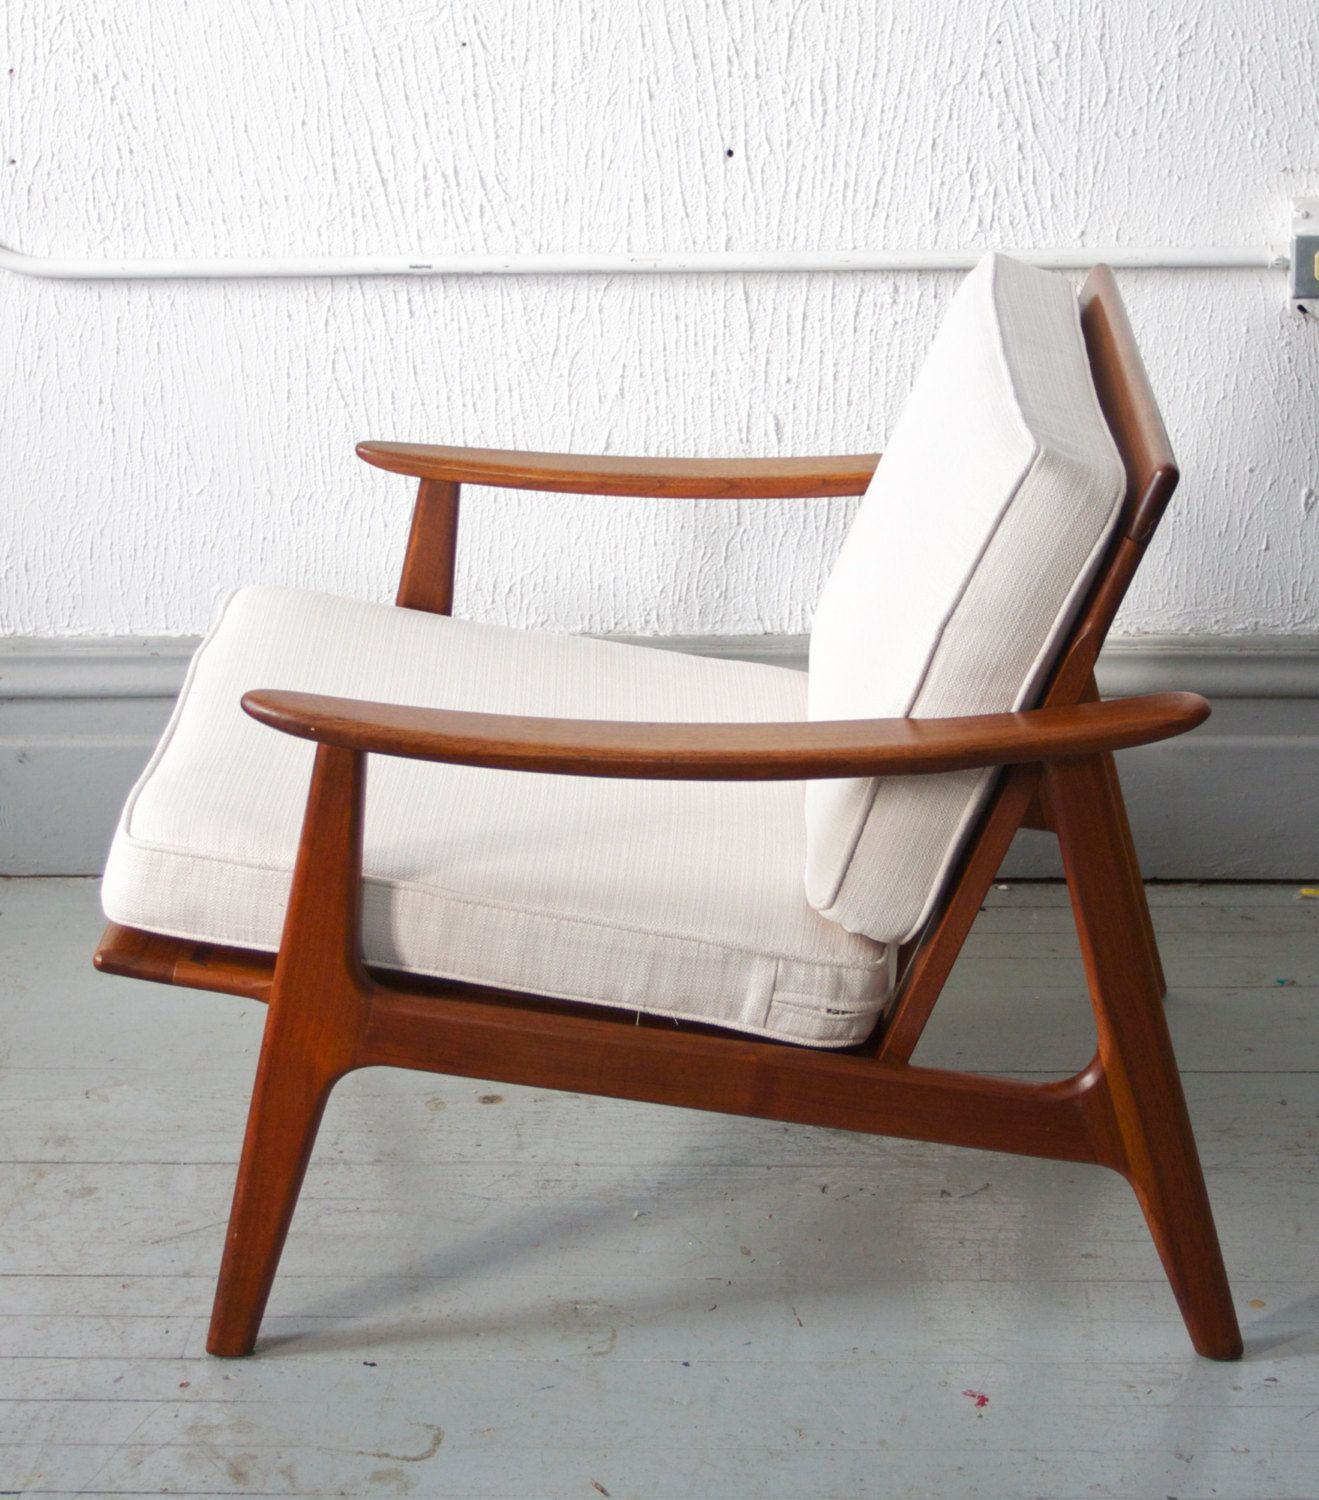 Midcentury Chairs Mid Century Modern Danish Style Lounge Chair 50s 60s